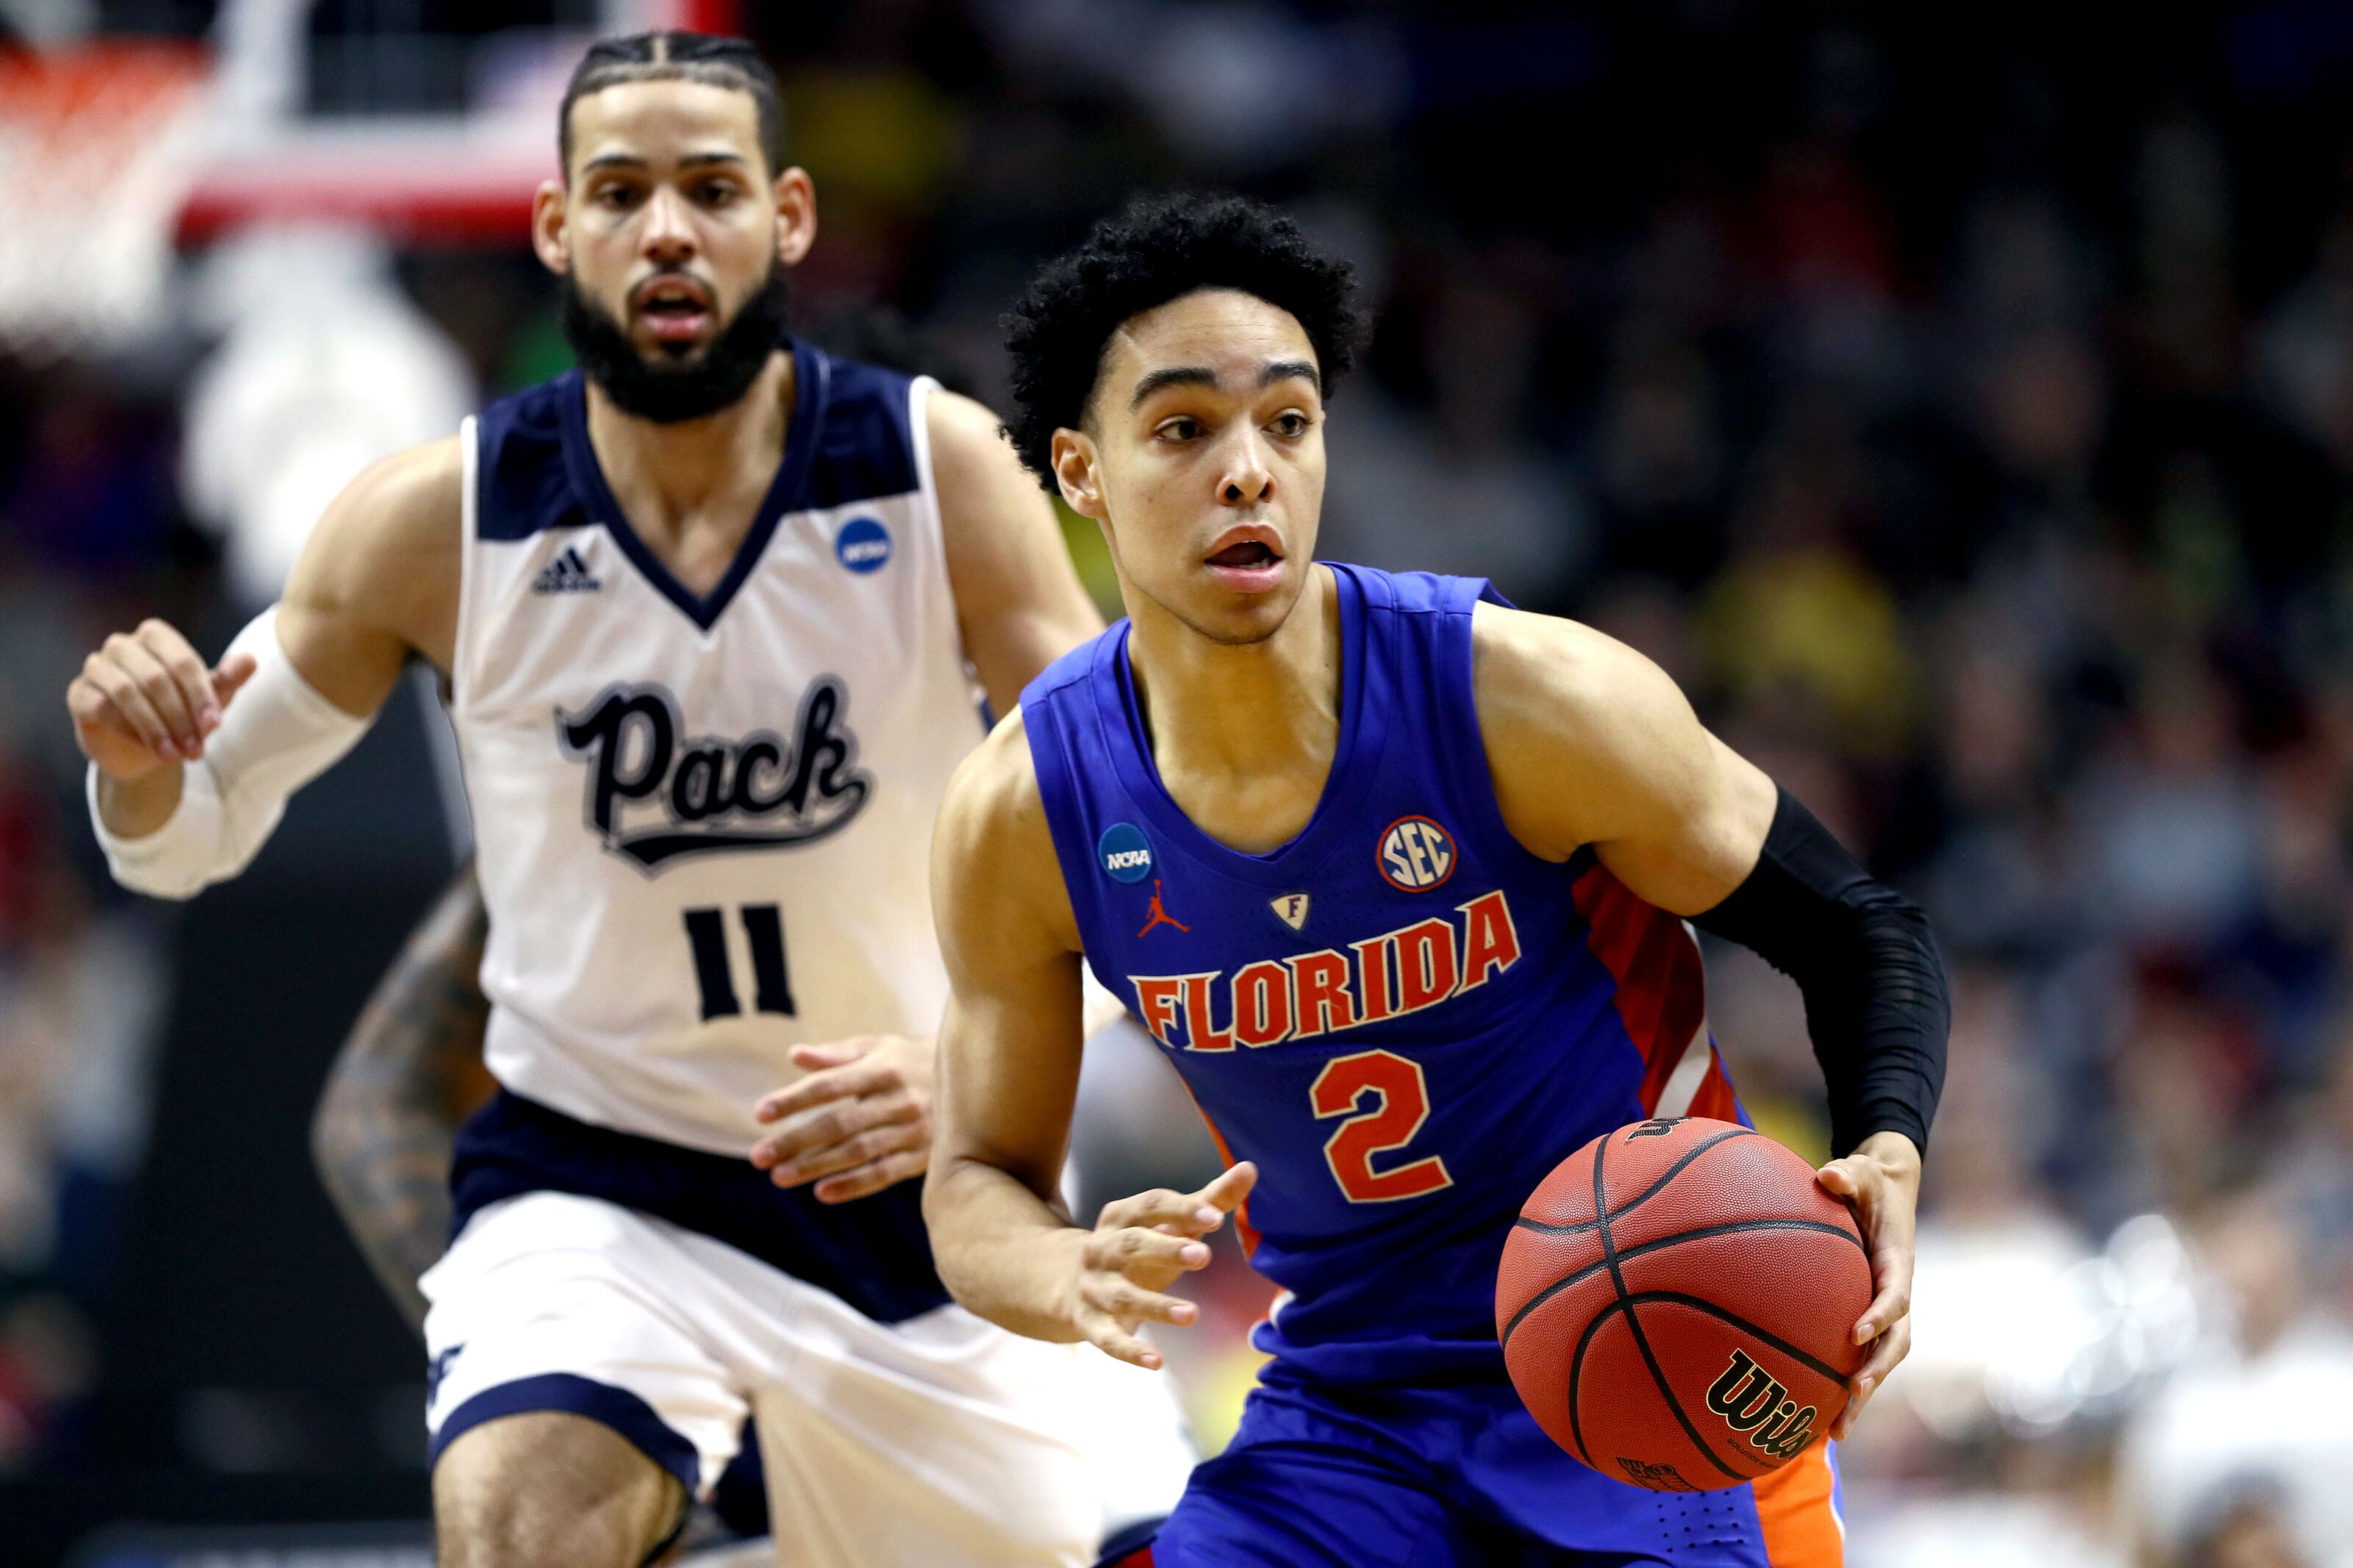 Florida Basketball What To Look For In The 2019 2020 Season